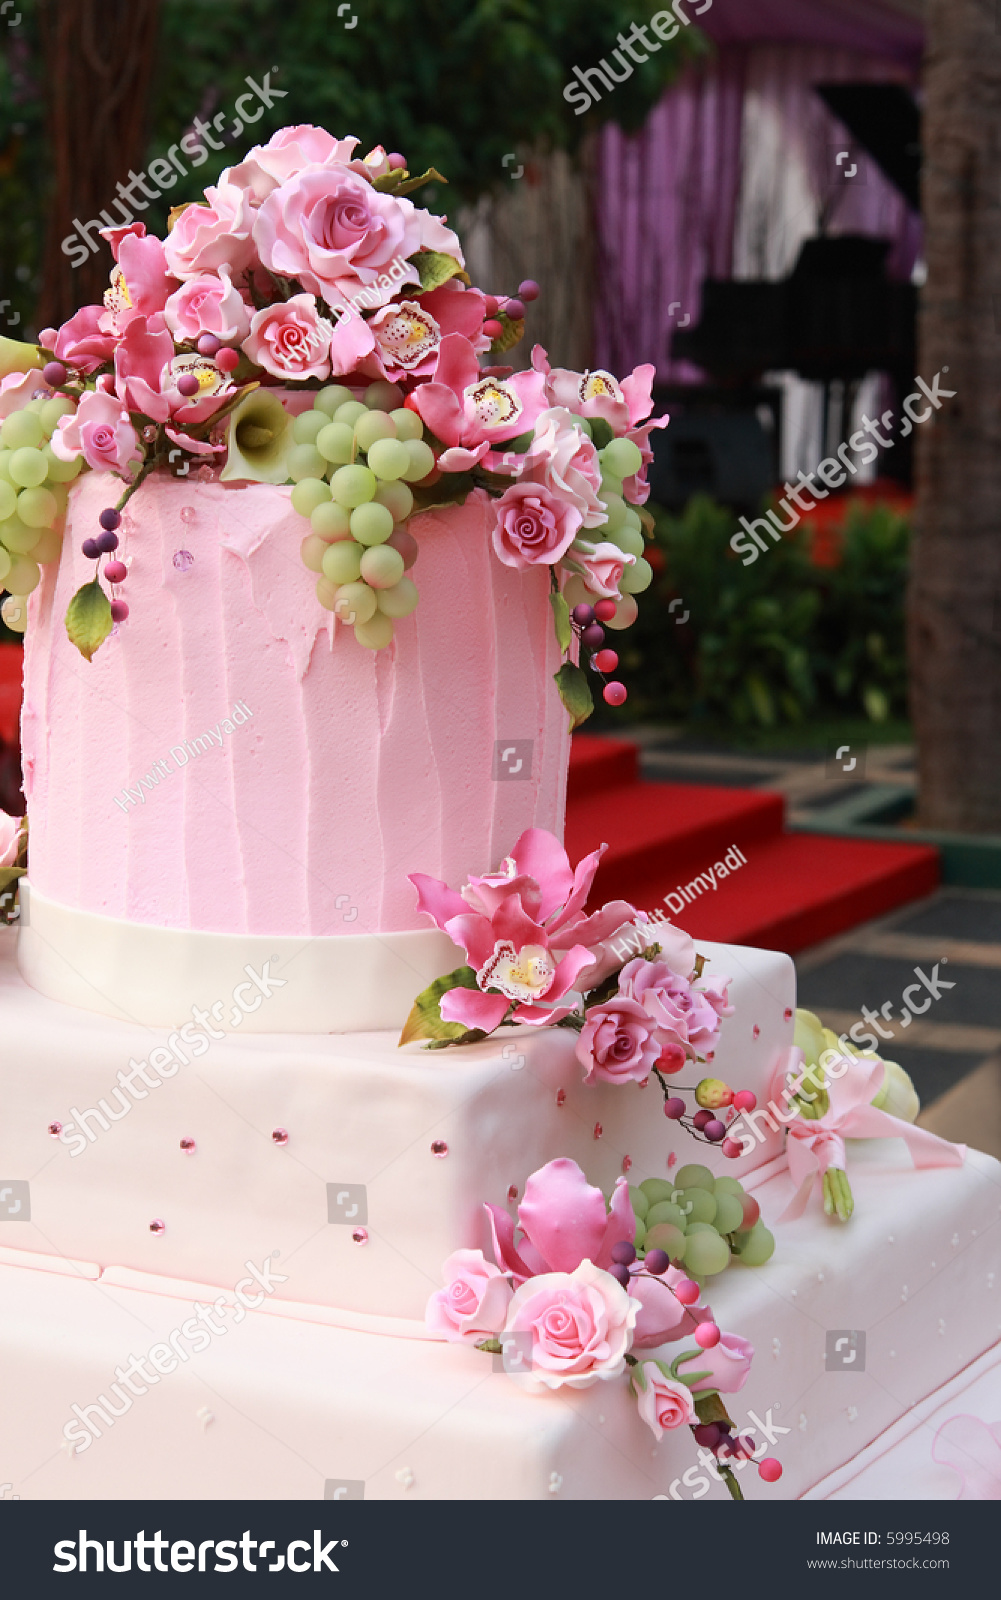 Pink Wedding Cake Decorated Flowers Grapes Stock Photo (Royalty Free ...